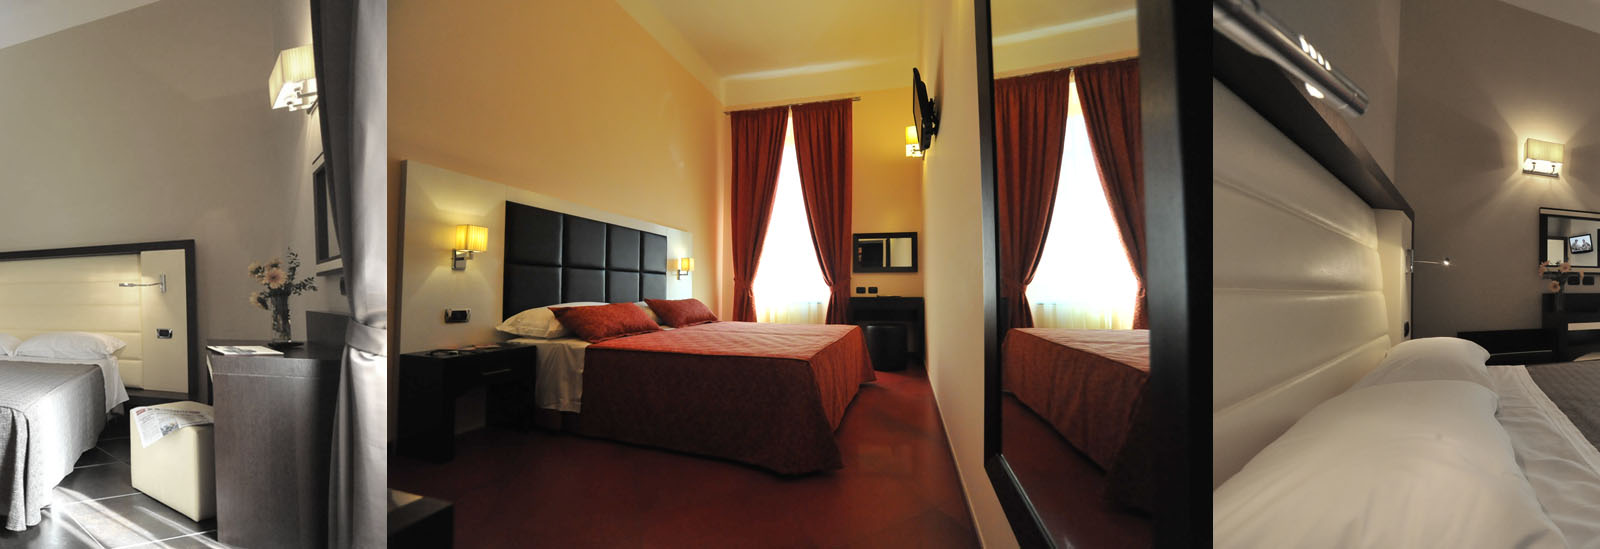 Cenci Bed & Breakfast